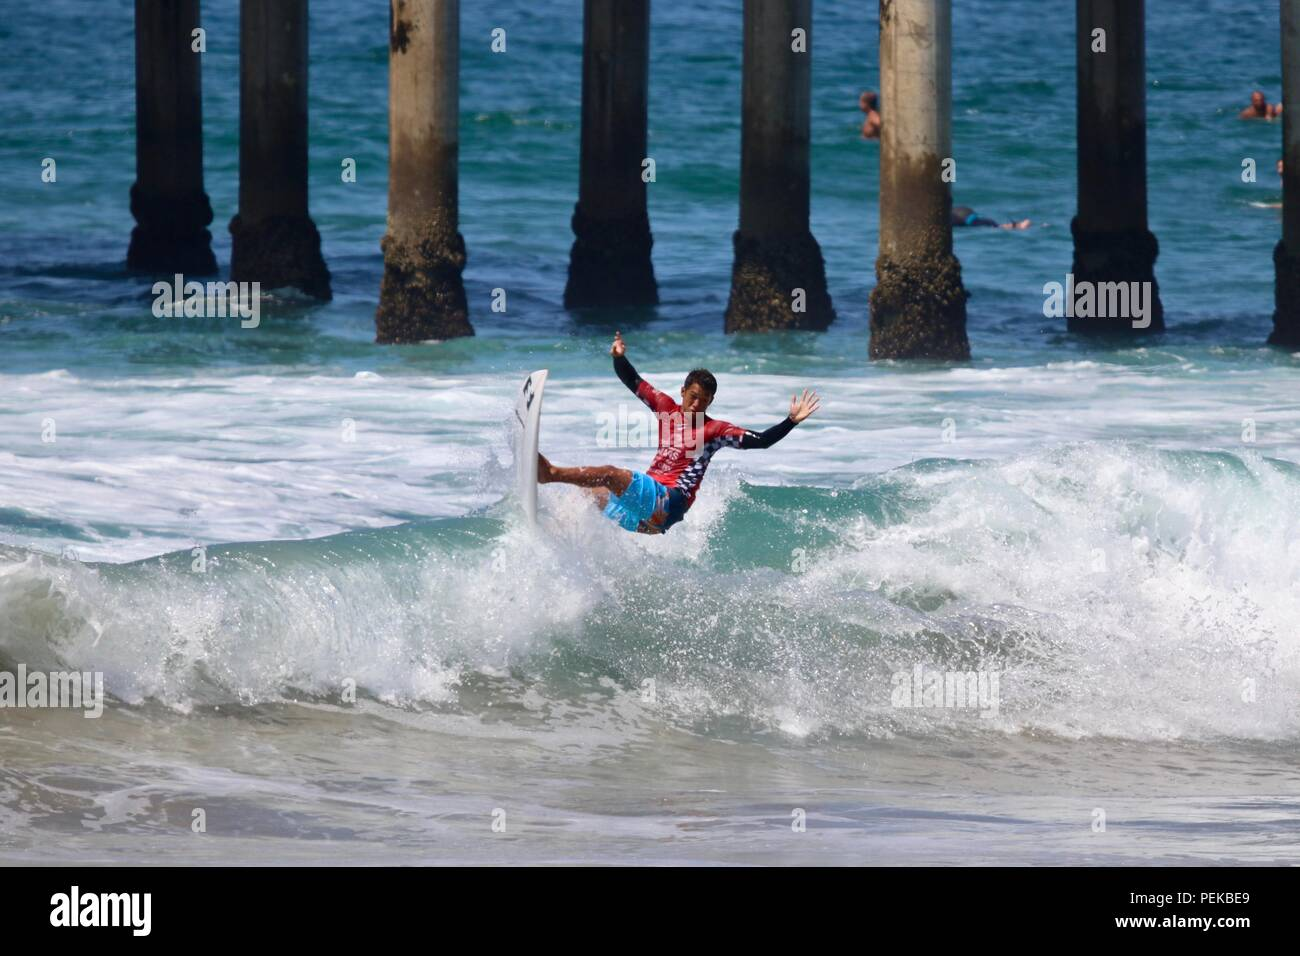 Seth Moniz competing in the US Open of Surfing 2018 - Stock Image